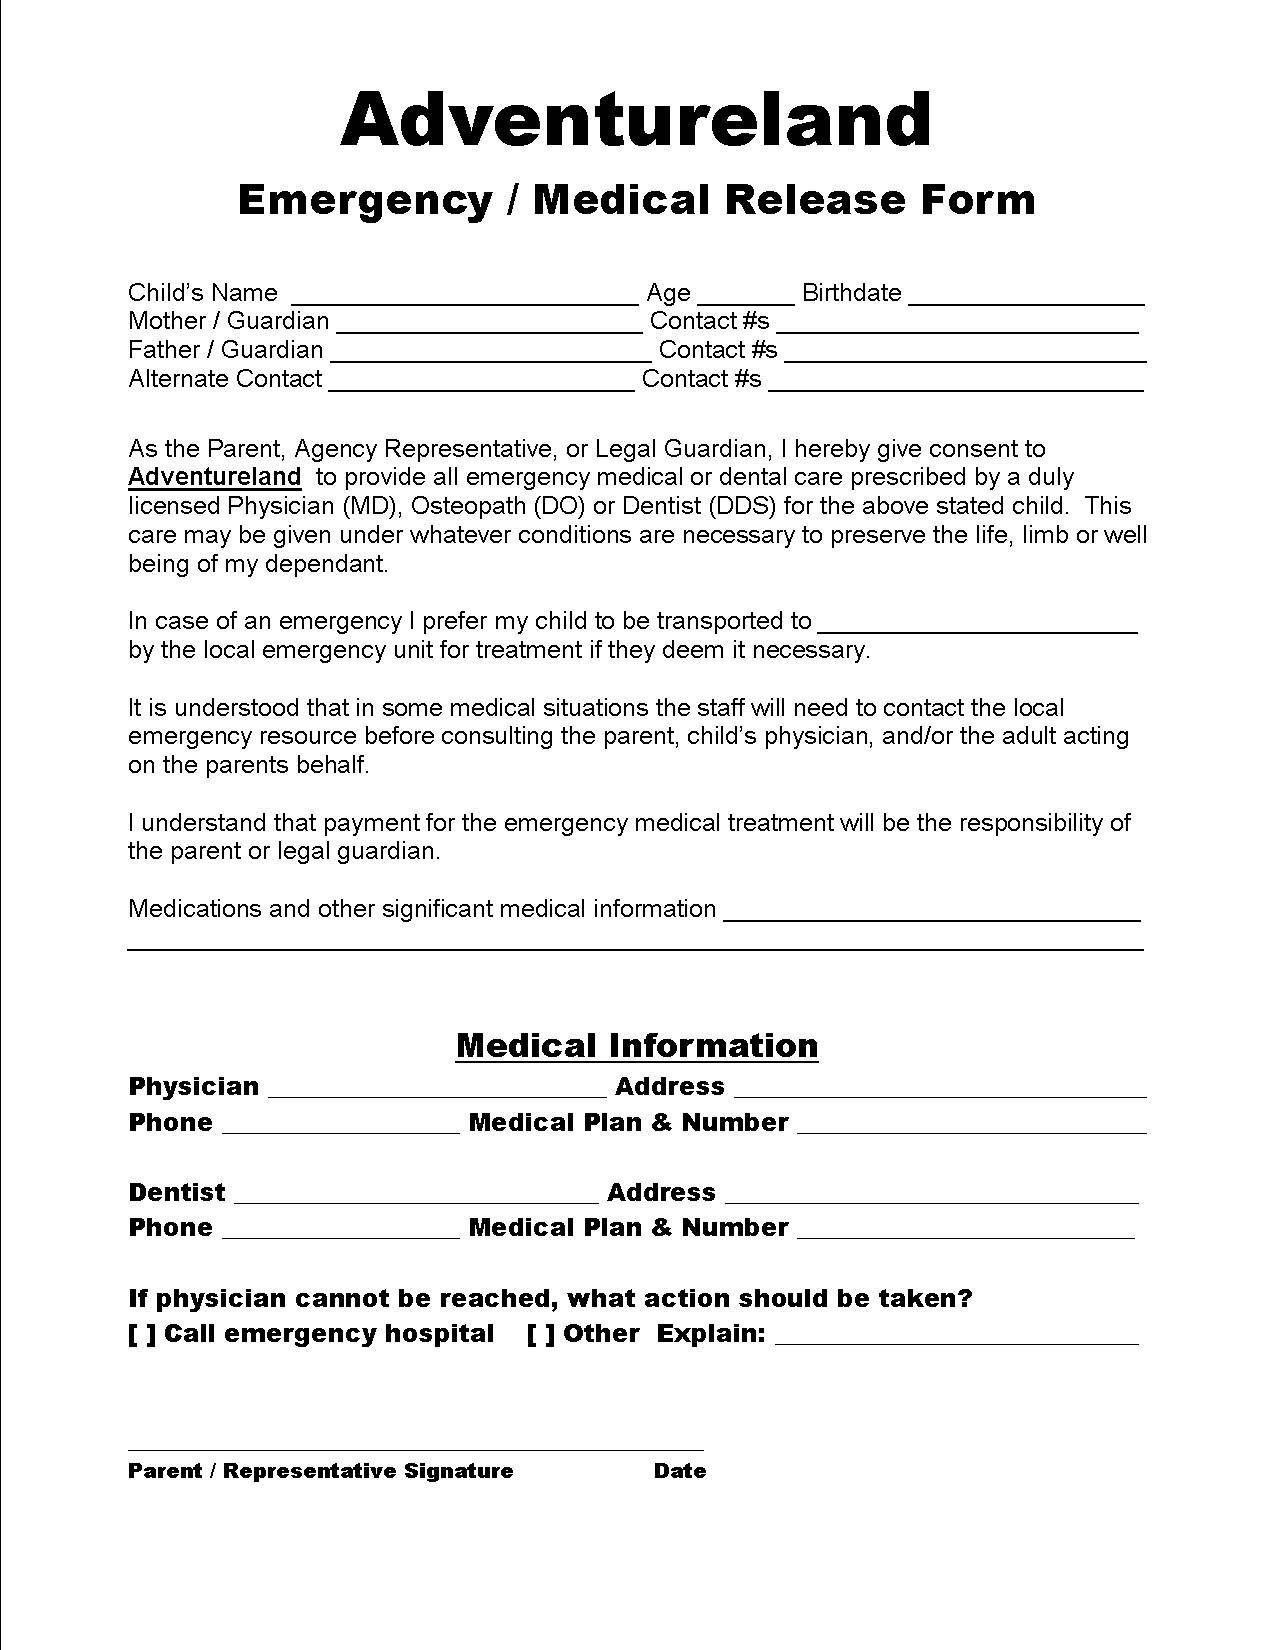 Crosswind Community Church School School Forms – Emergency Contact Forms